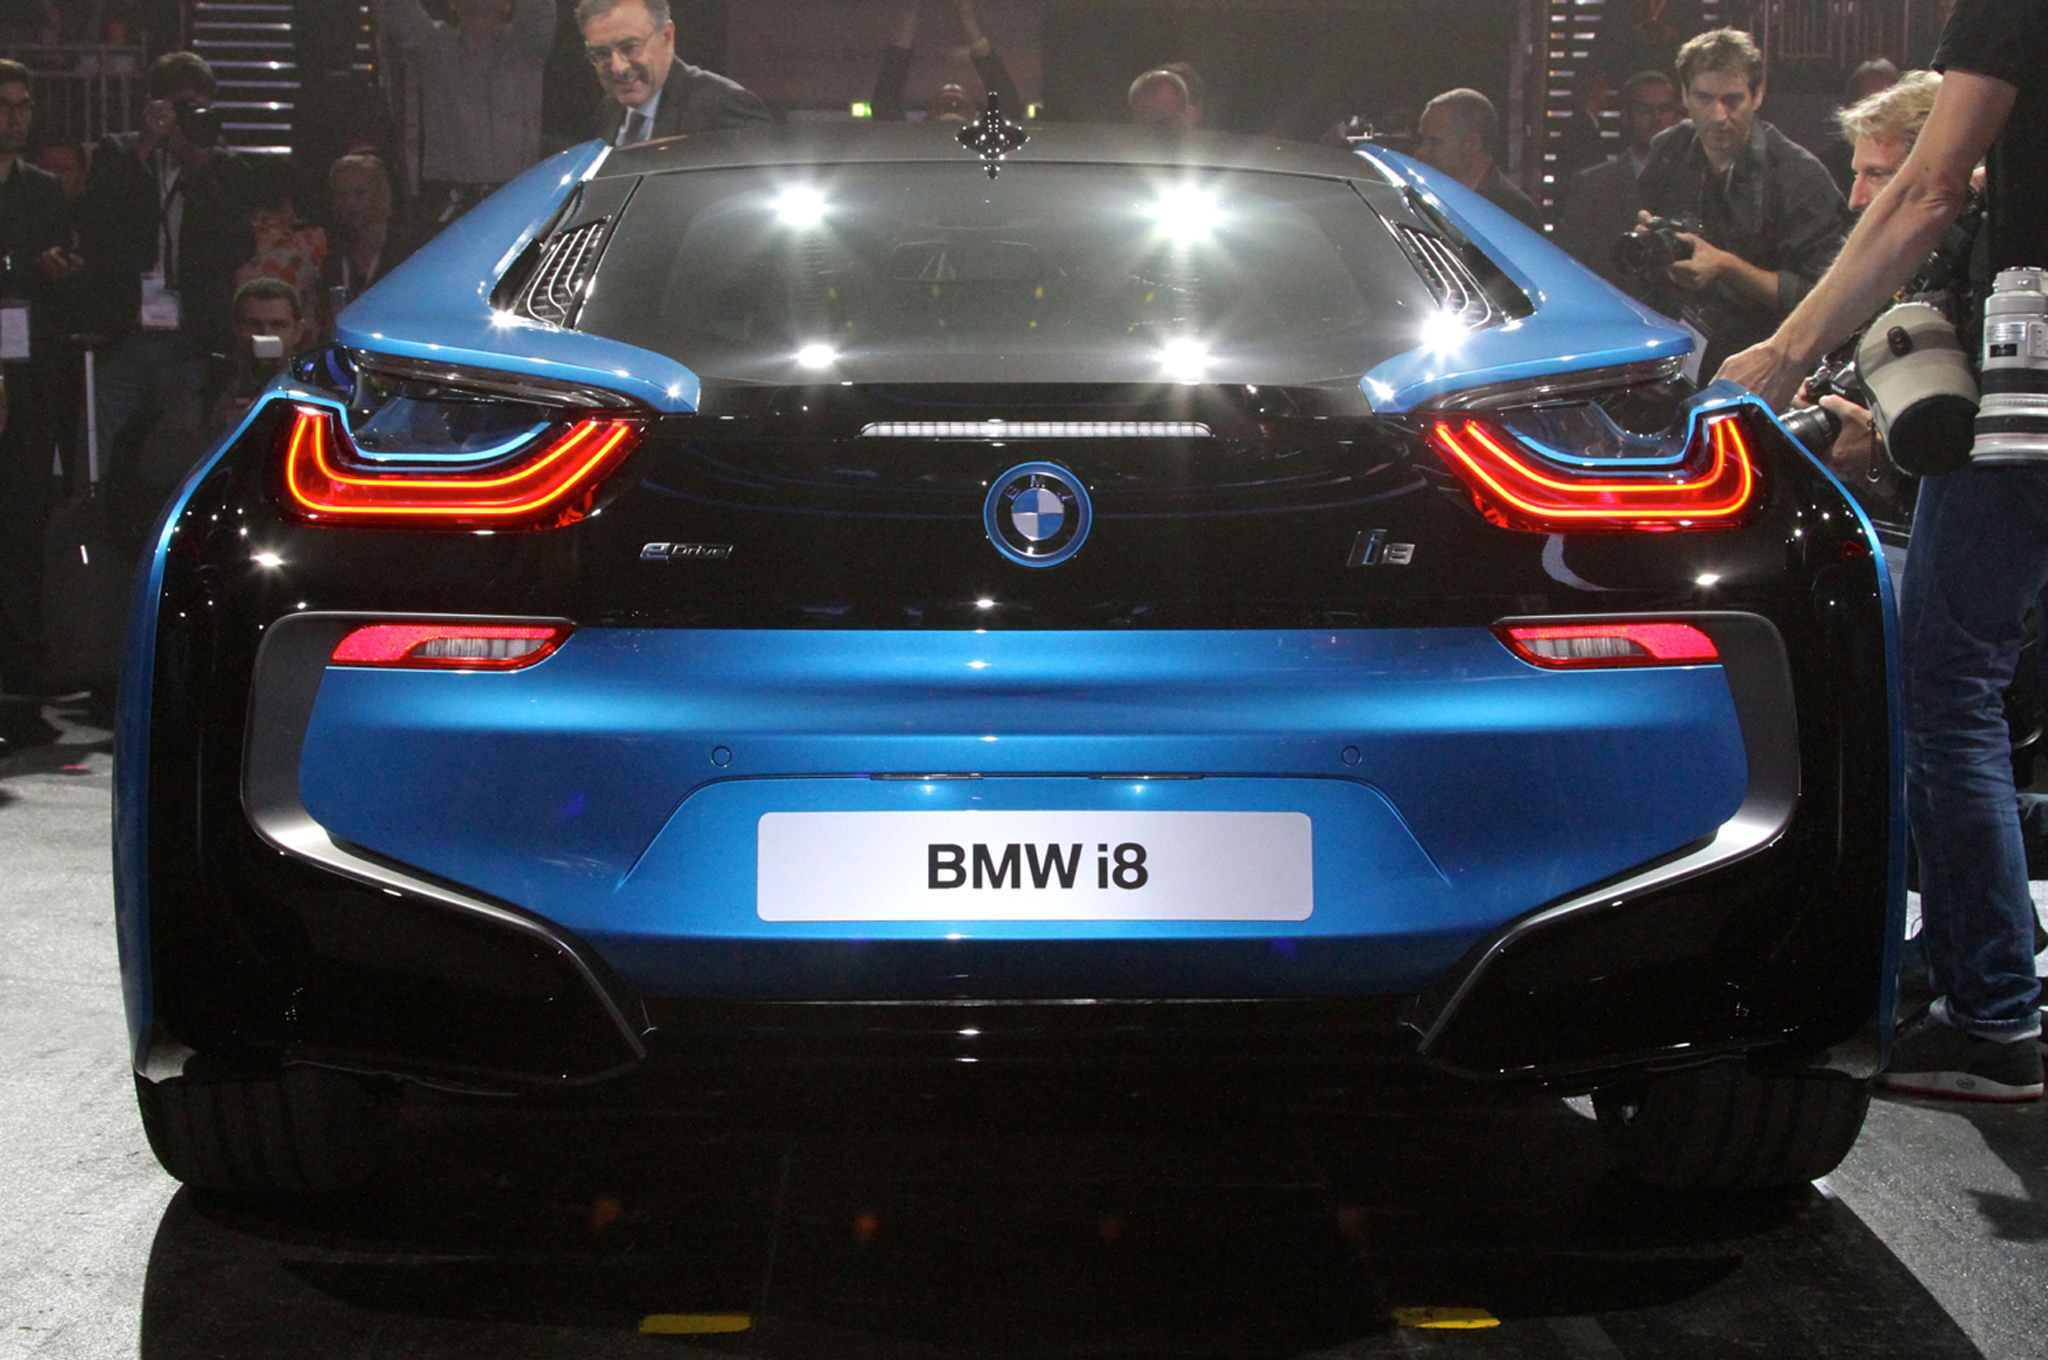 2014 BMW i8 plug in hybrid rear end